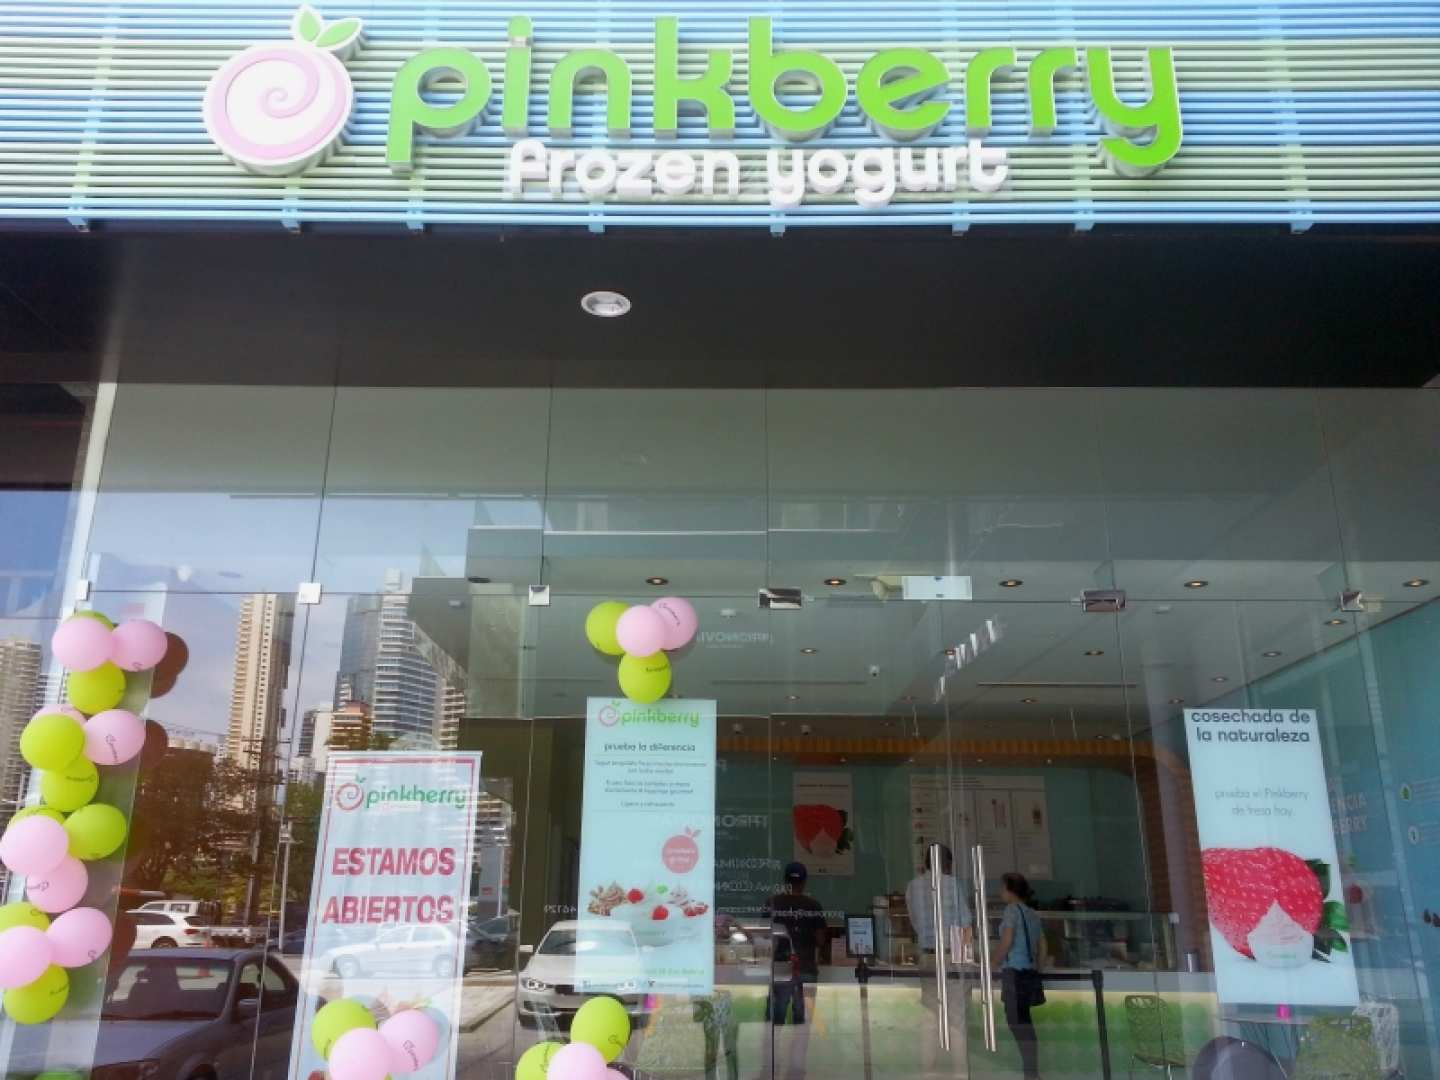 Pinkberry (Balboa Boutiques)